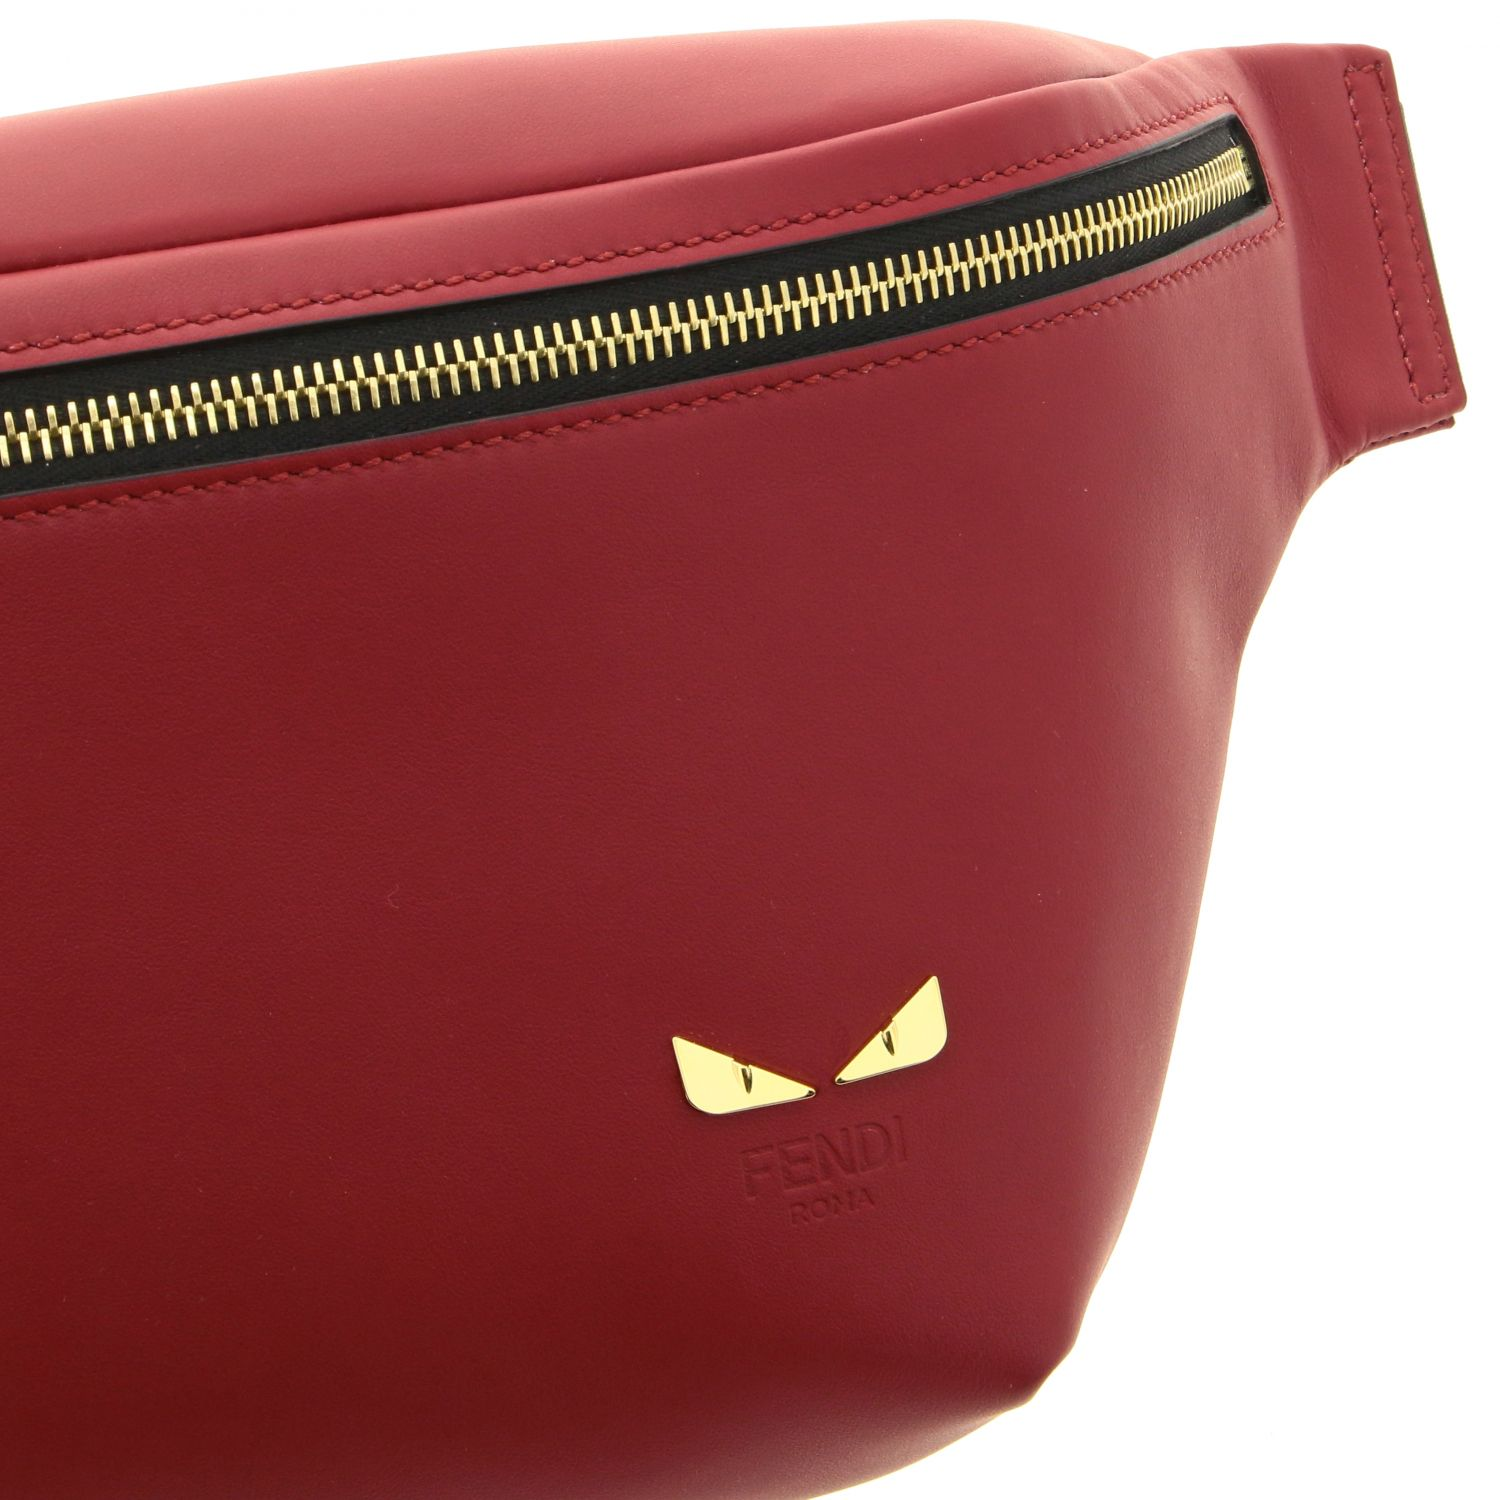 Fendi belt bag in smooth leather with mini bugs red 4